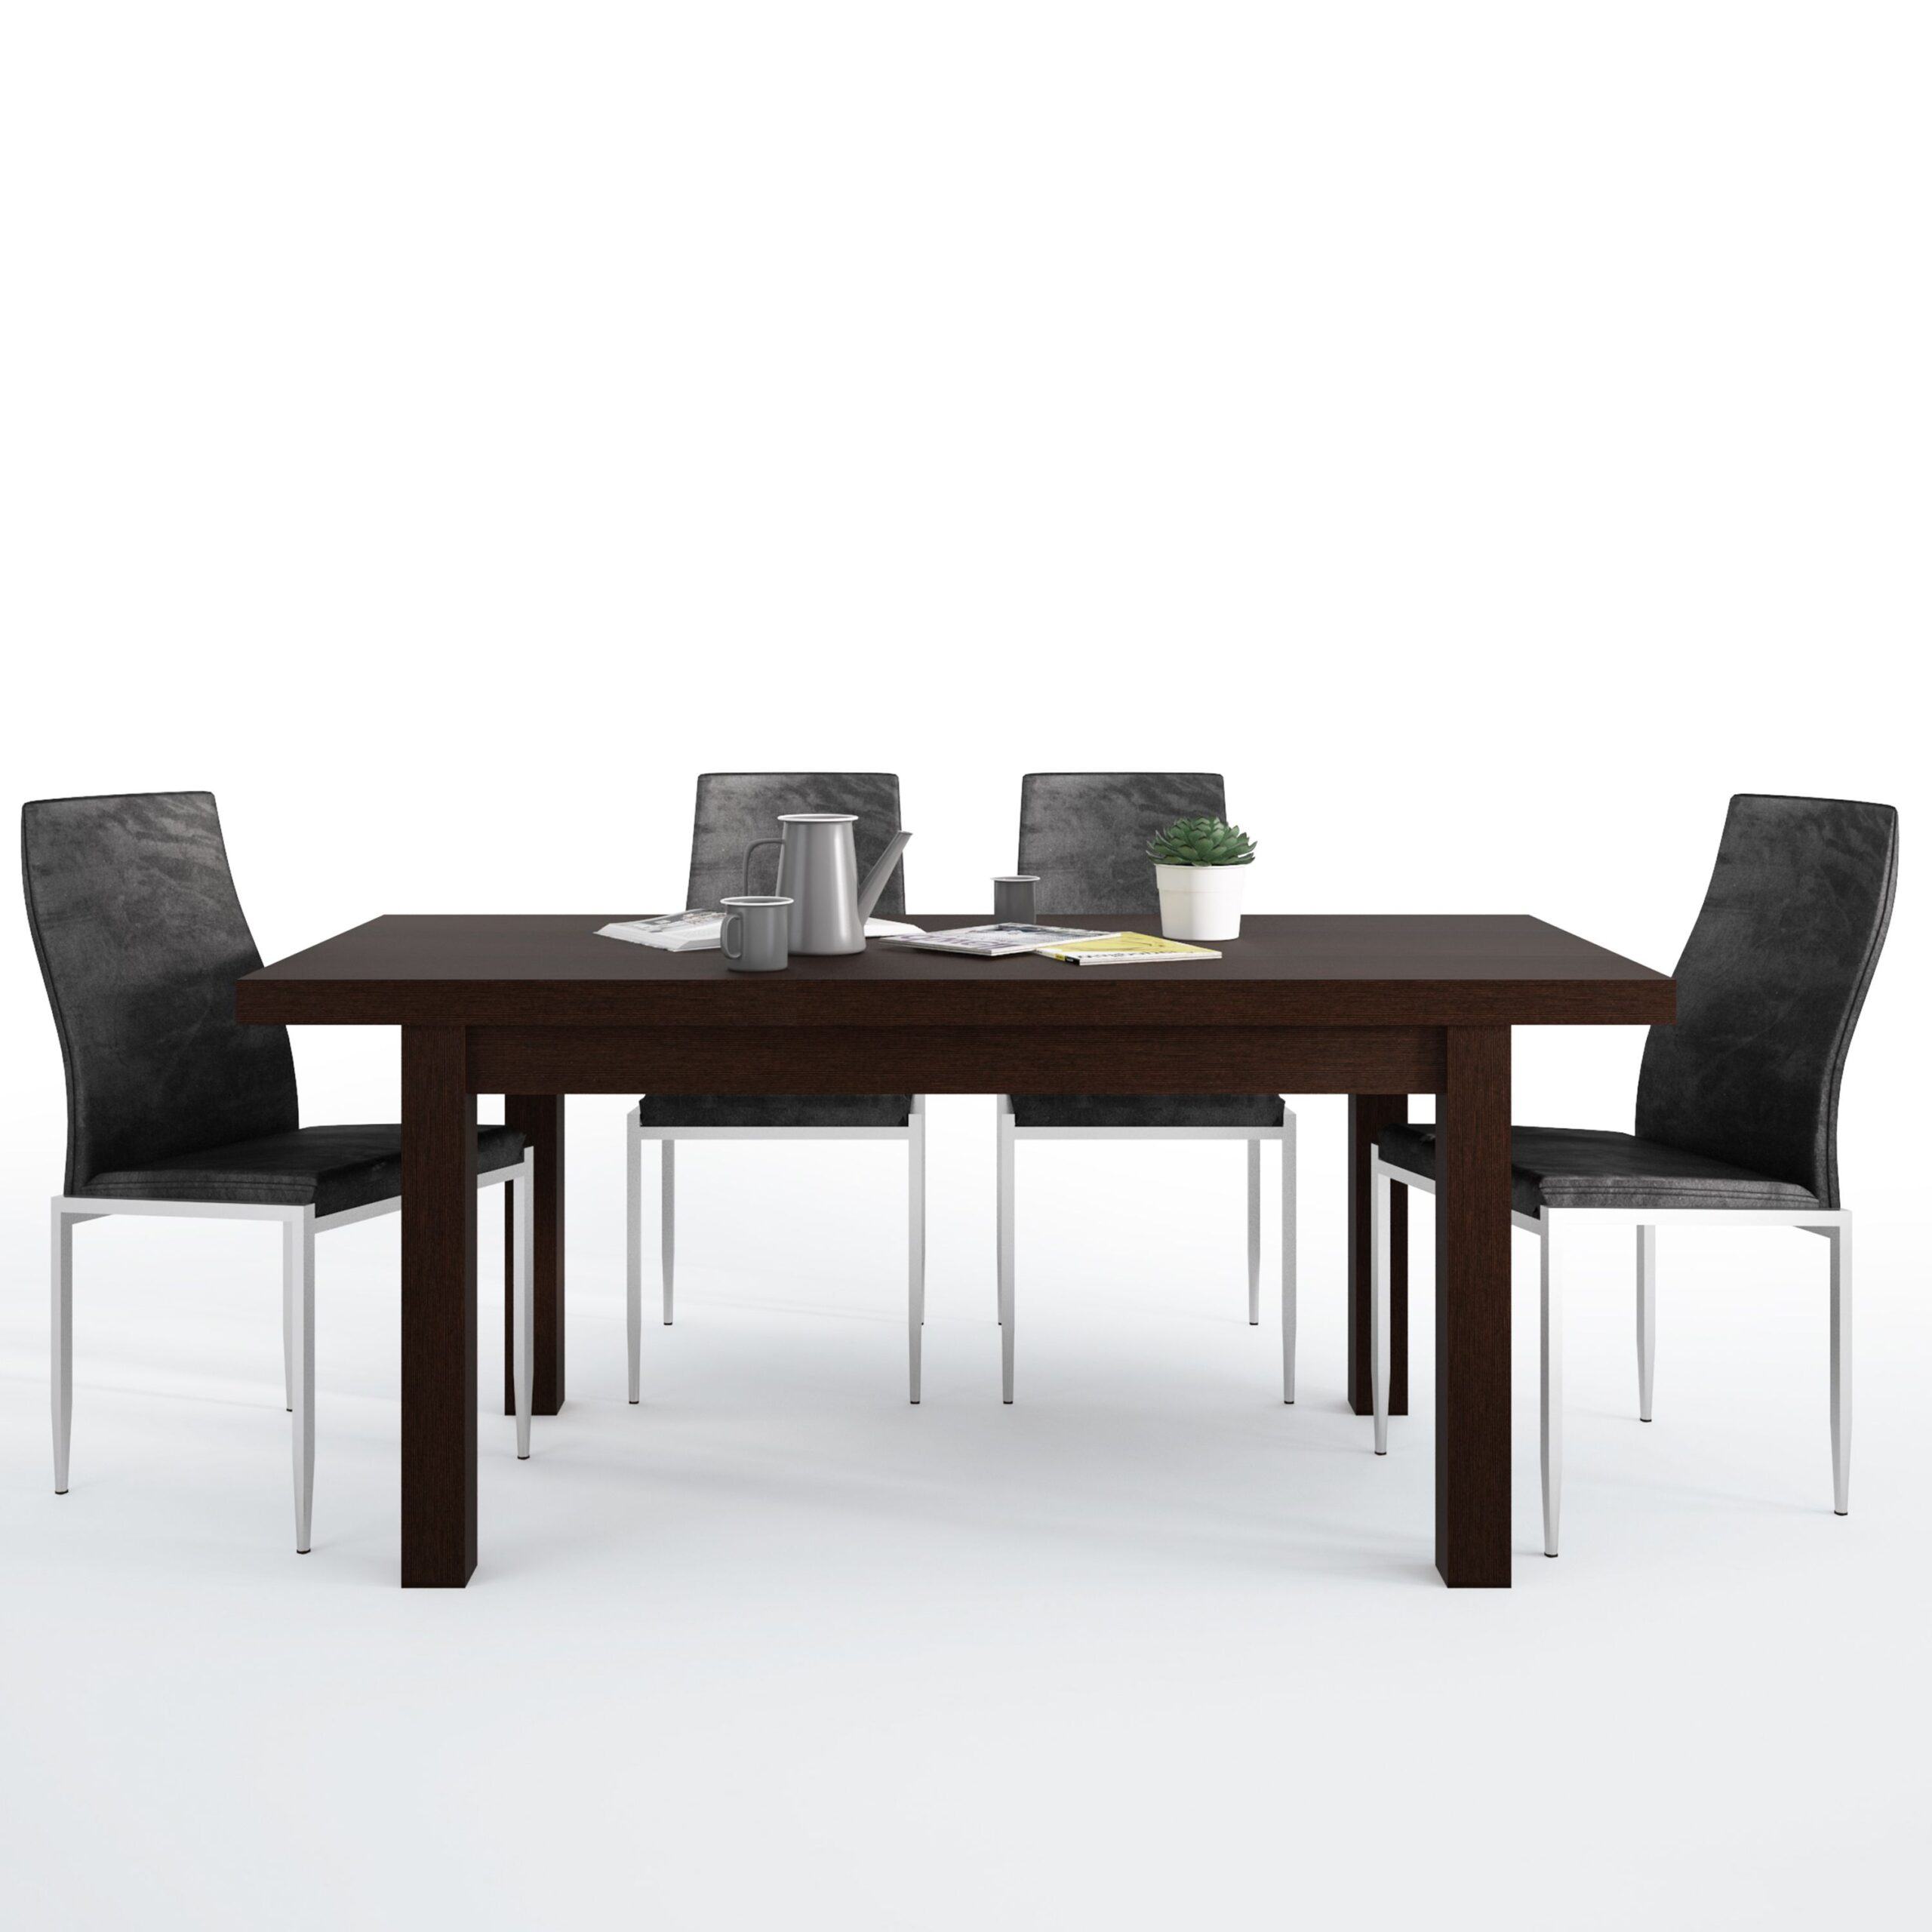 Jello Dining set package Jello Extending Dining Table in Dark Mahogany + 4 Lillie High Back Chair Black